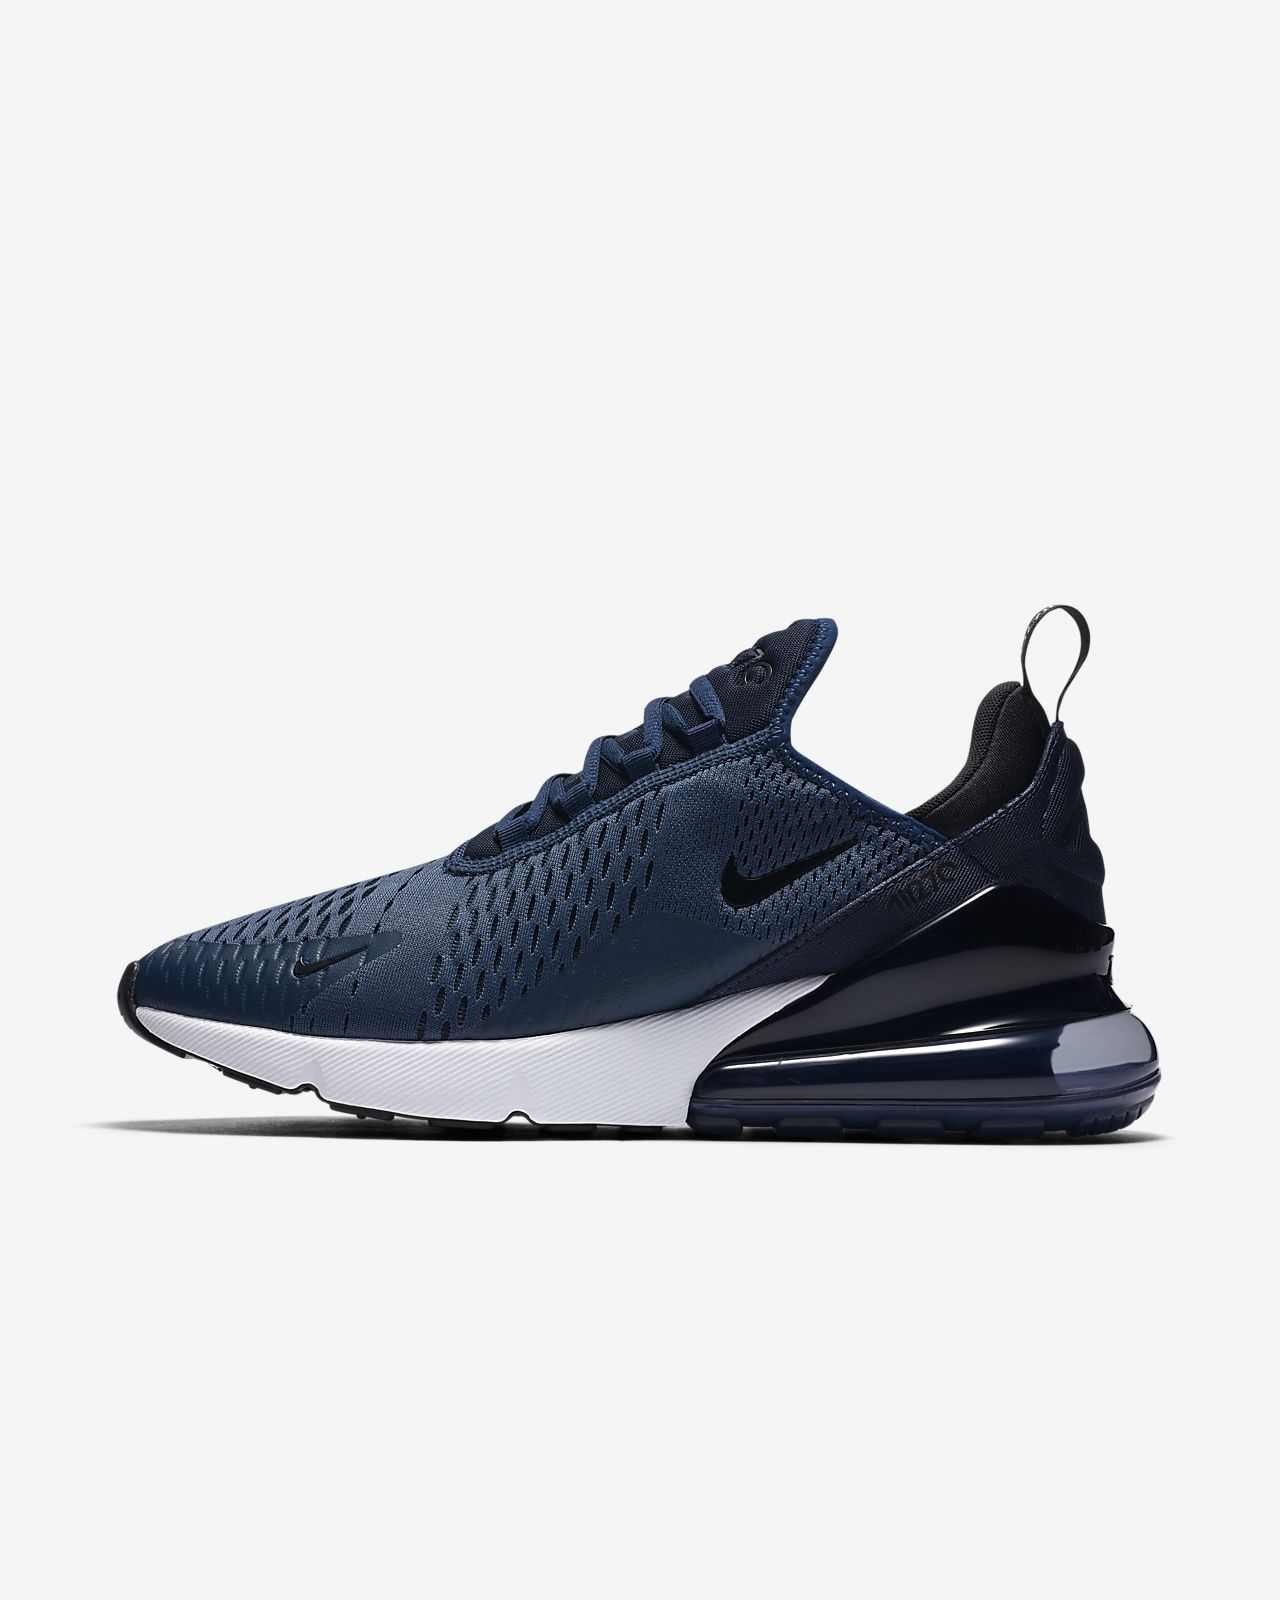 9feb47abcbf9 Nike Air Max 270 Men s Shoe. Nike.com NL